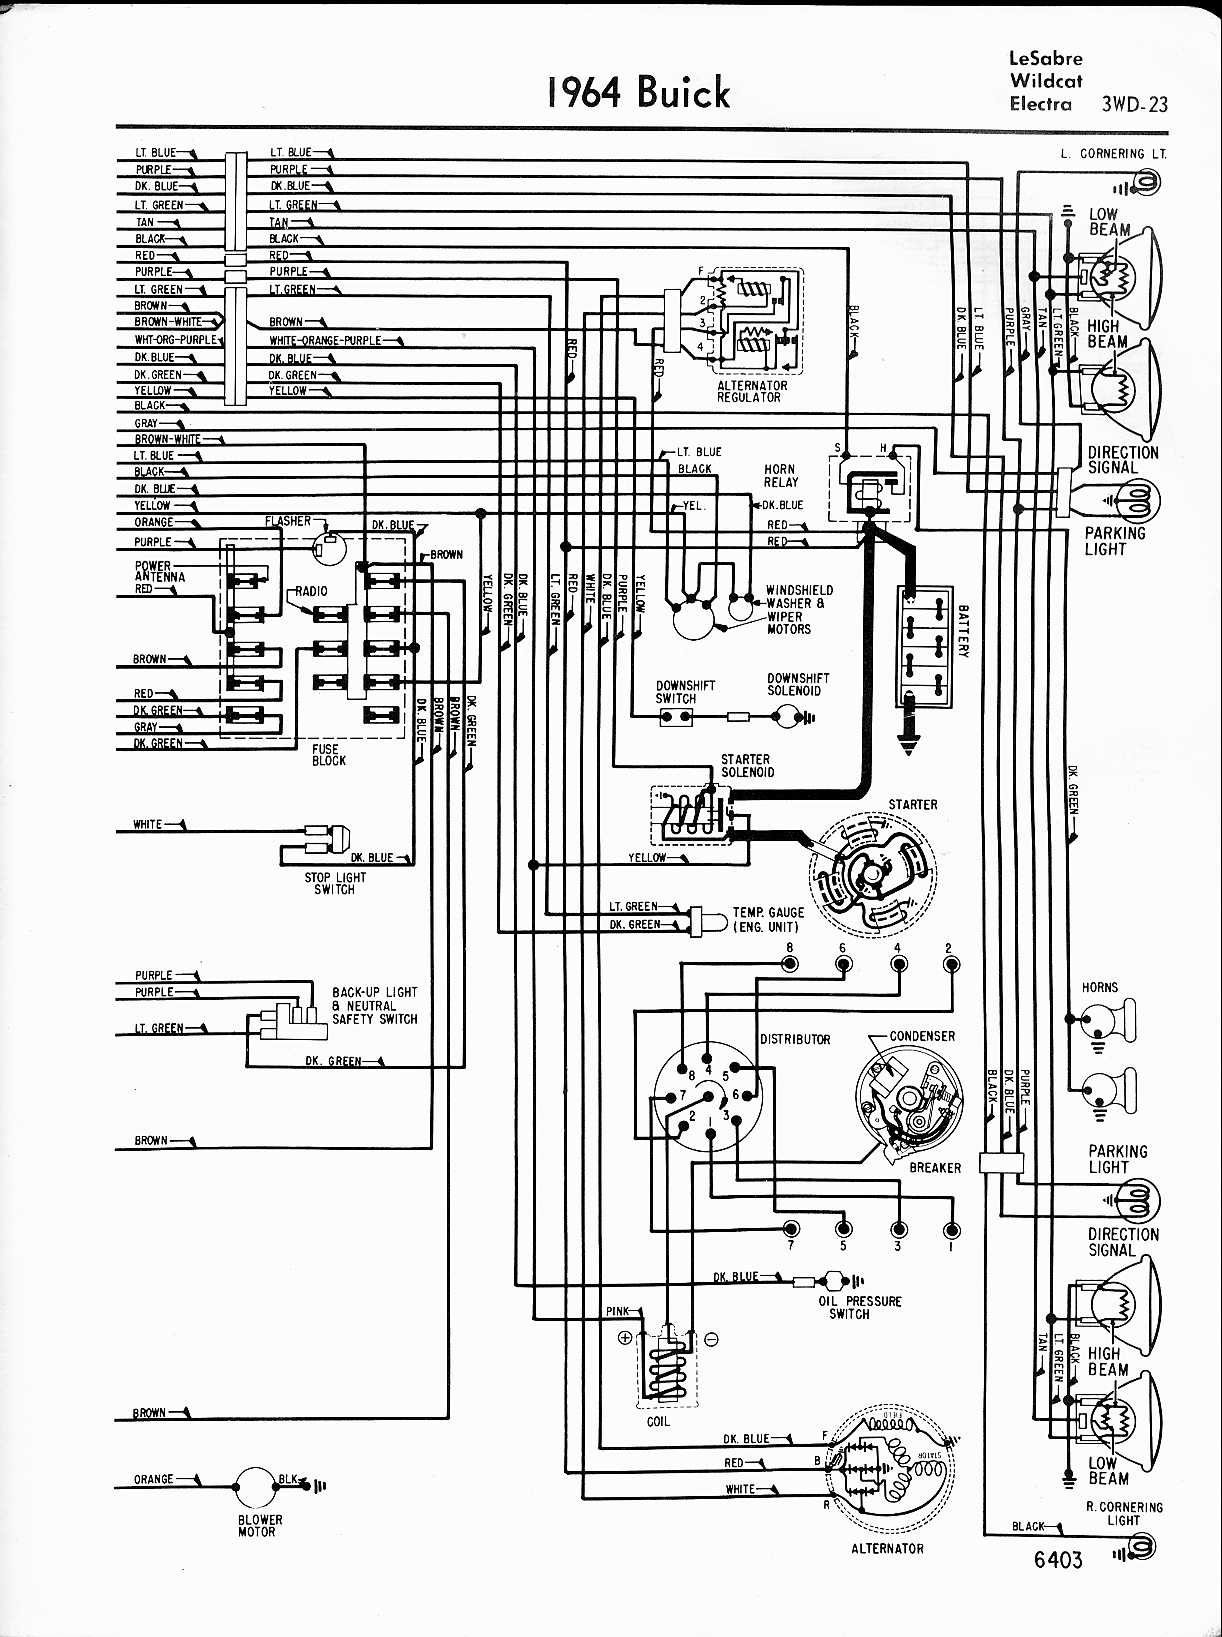 Buick Wiring Diagrams 1957 1965 Diagram For 03 Honda Rancher 1964 Lesabre Wildcat Electra Right Half